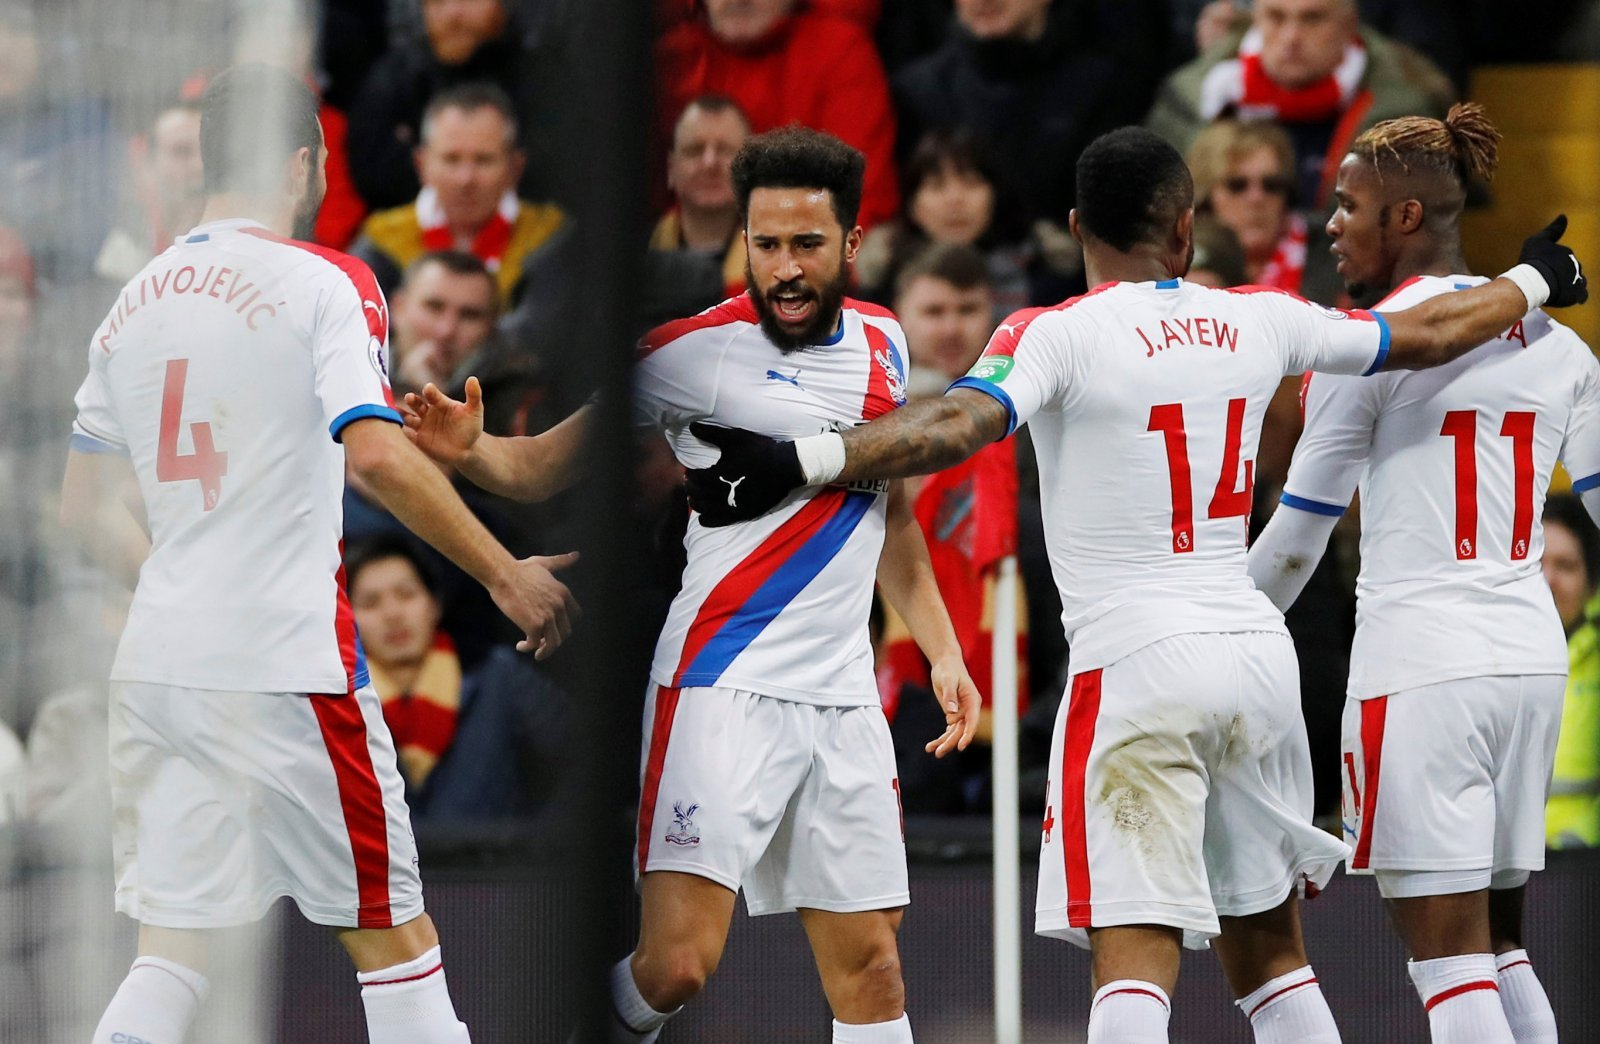 Palace fans on Twitter all called for Townsend as their man of the match yesterday